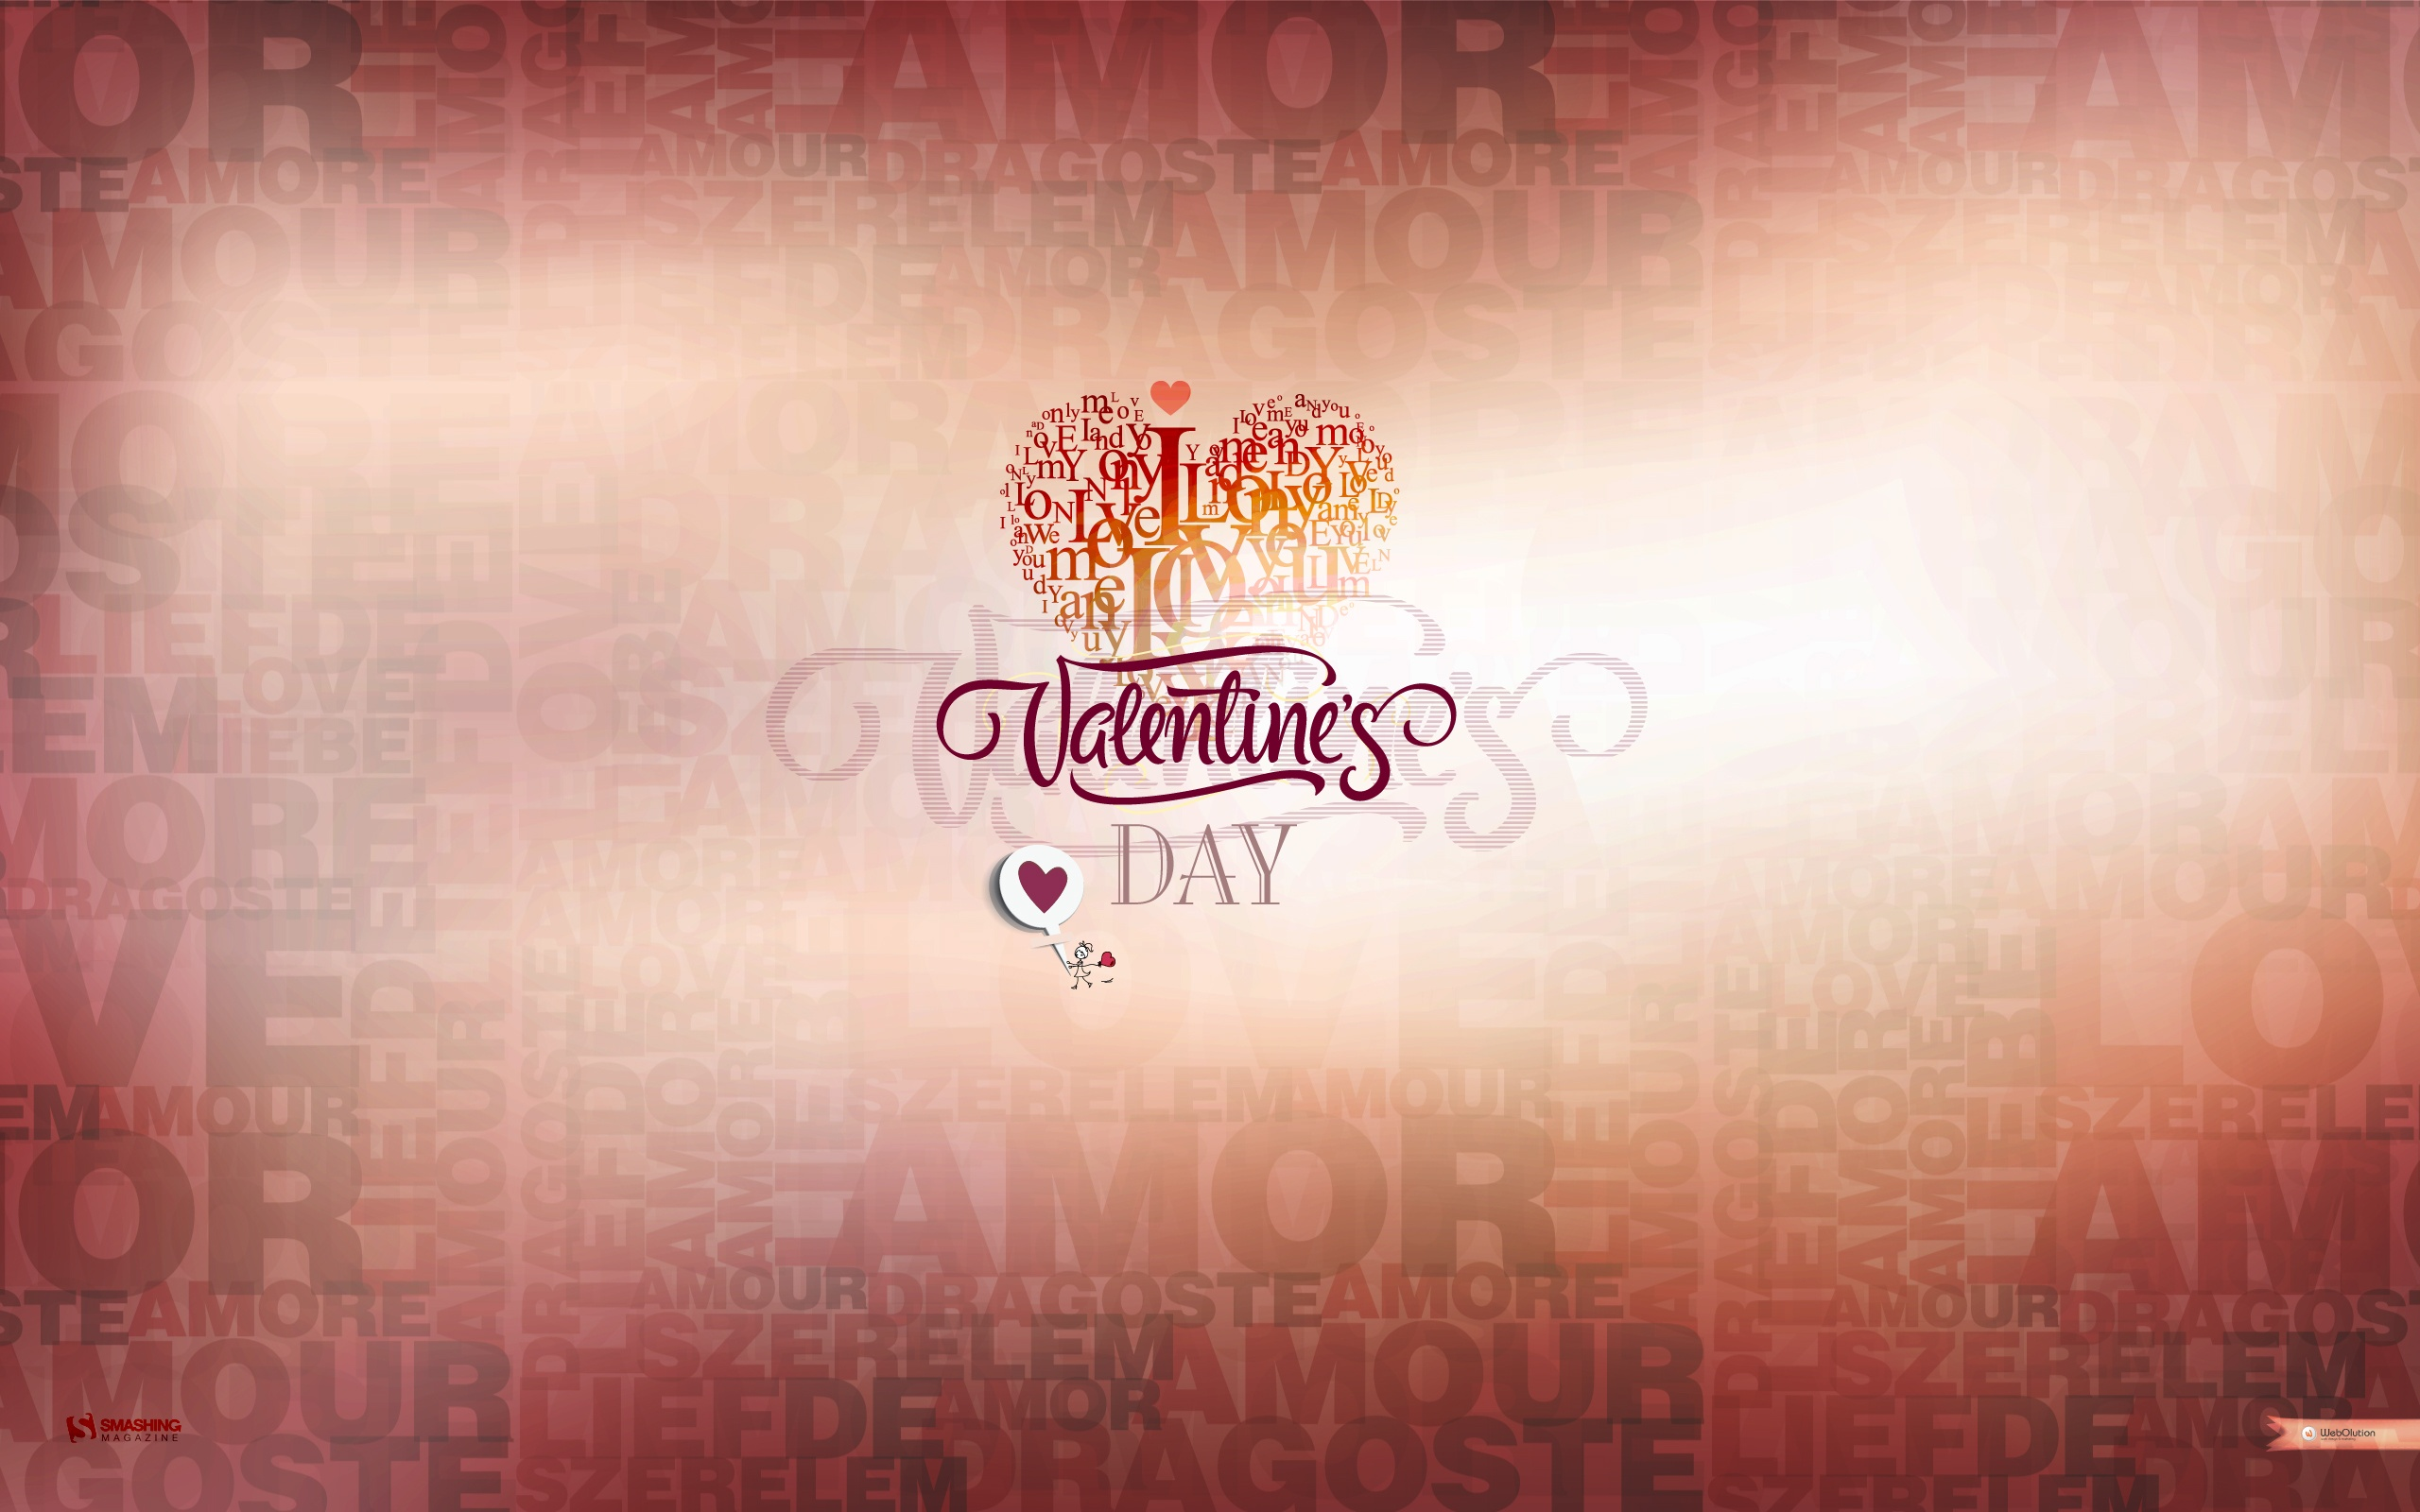 Feb 14 Valentines Day 751.9 Kb